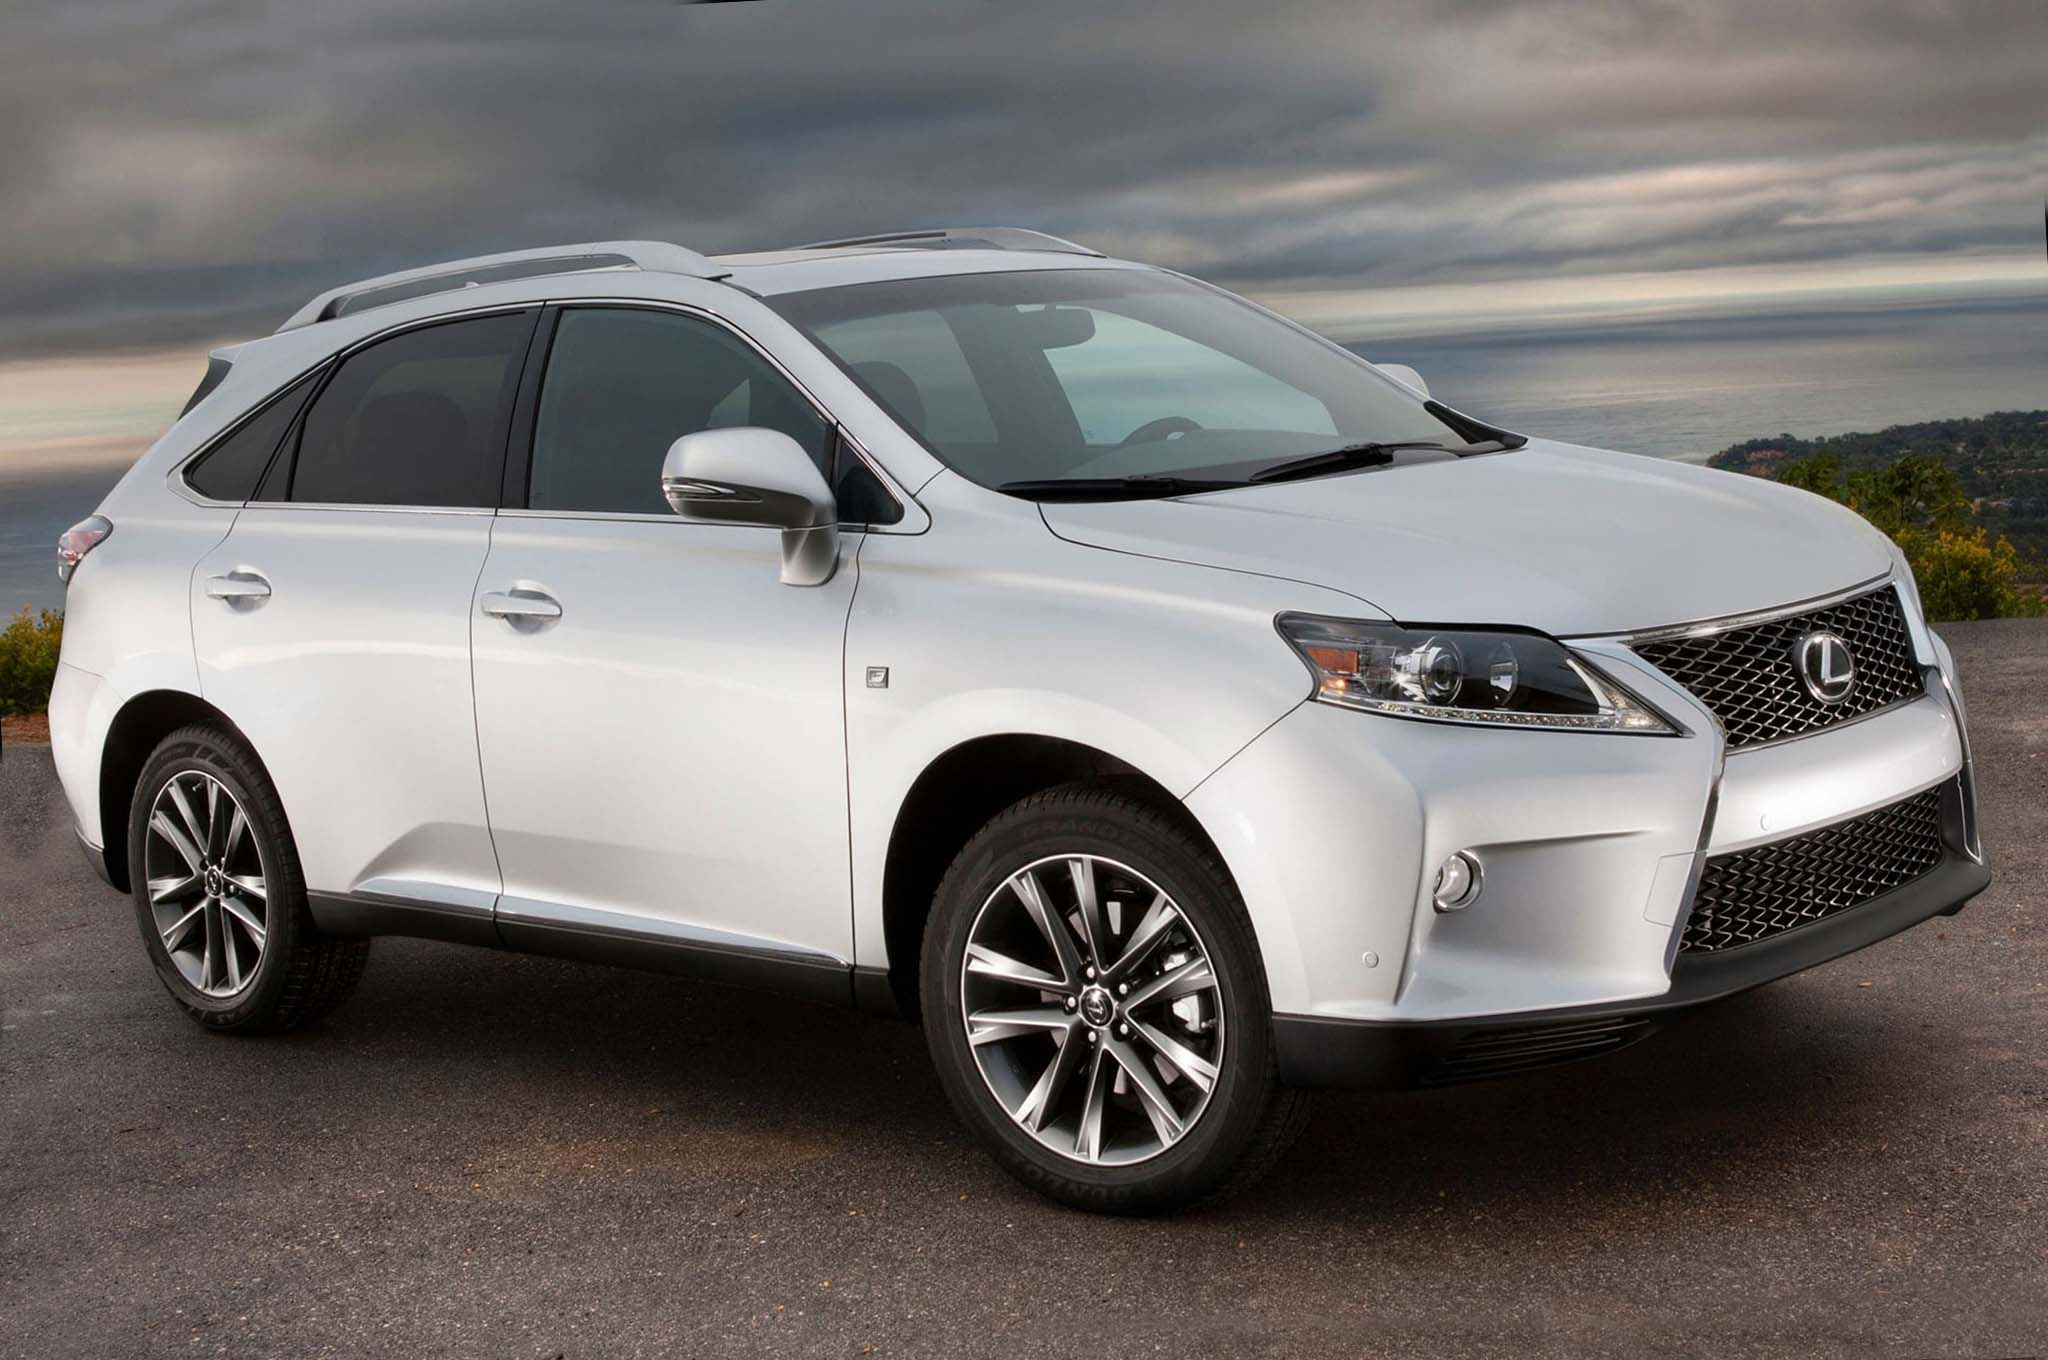 2014 Lexus Rx 350 Review And Price Lexus Rx350 Rvinyl